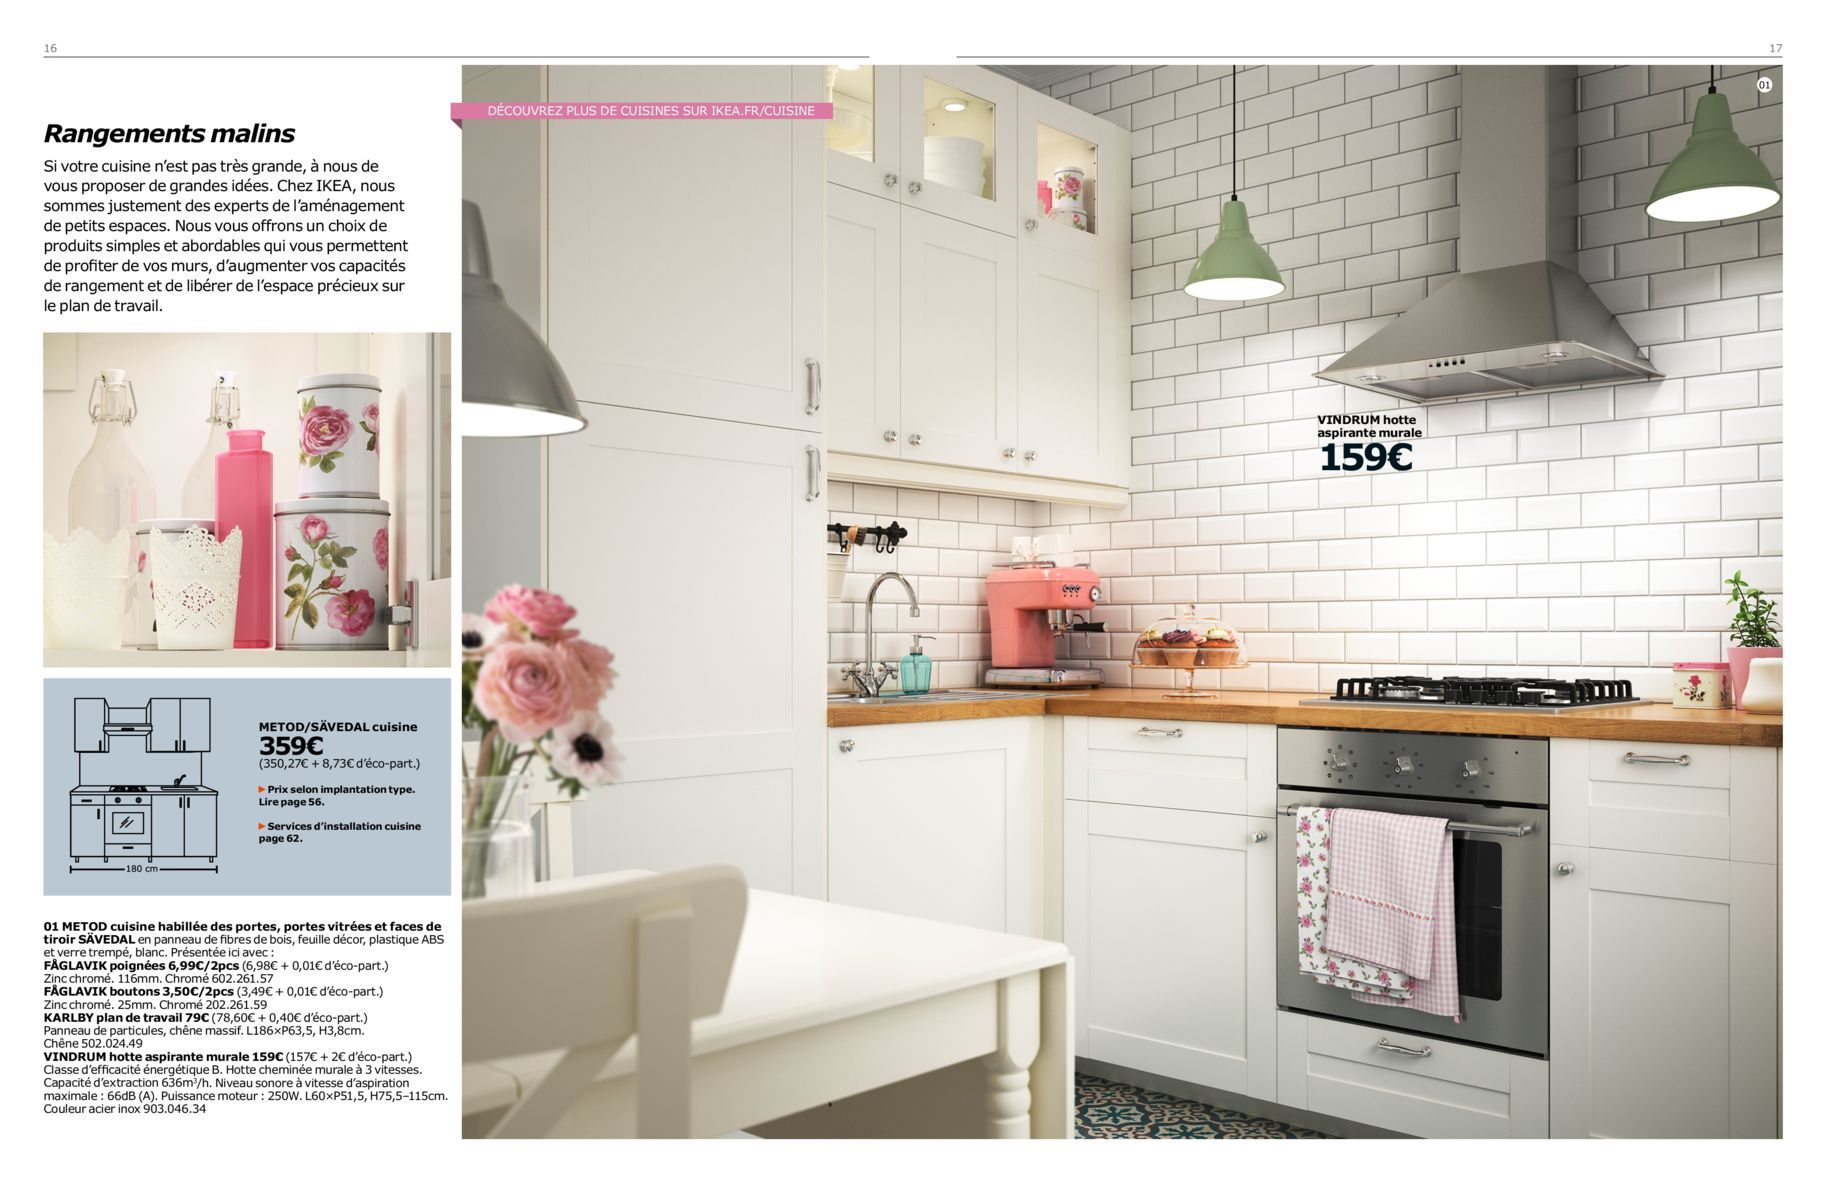 Hotte Vindrum Brochure Cuisine Metod 2016 Appartement Pinterest